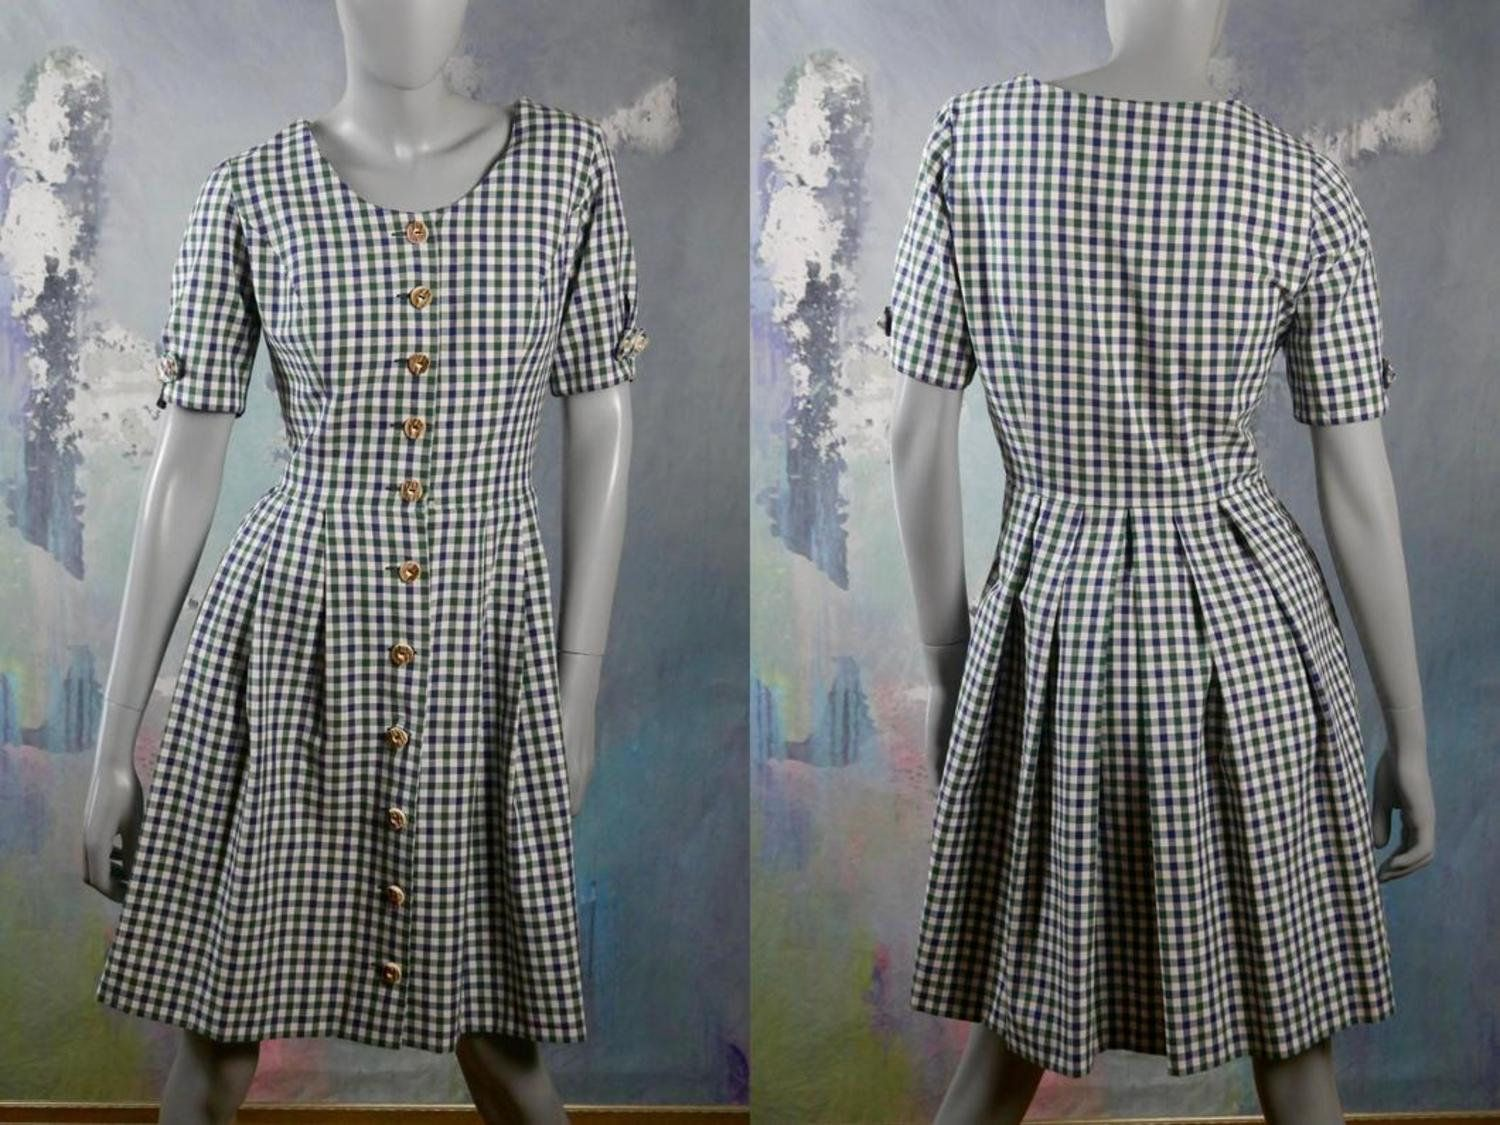 Spectacular 50 S Style Dresses For Sale Uk Xo Vintage Dresses Vintage 1950s Dresses 50 Style Dresses